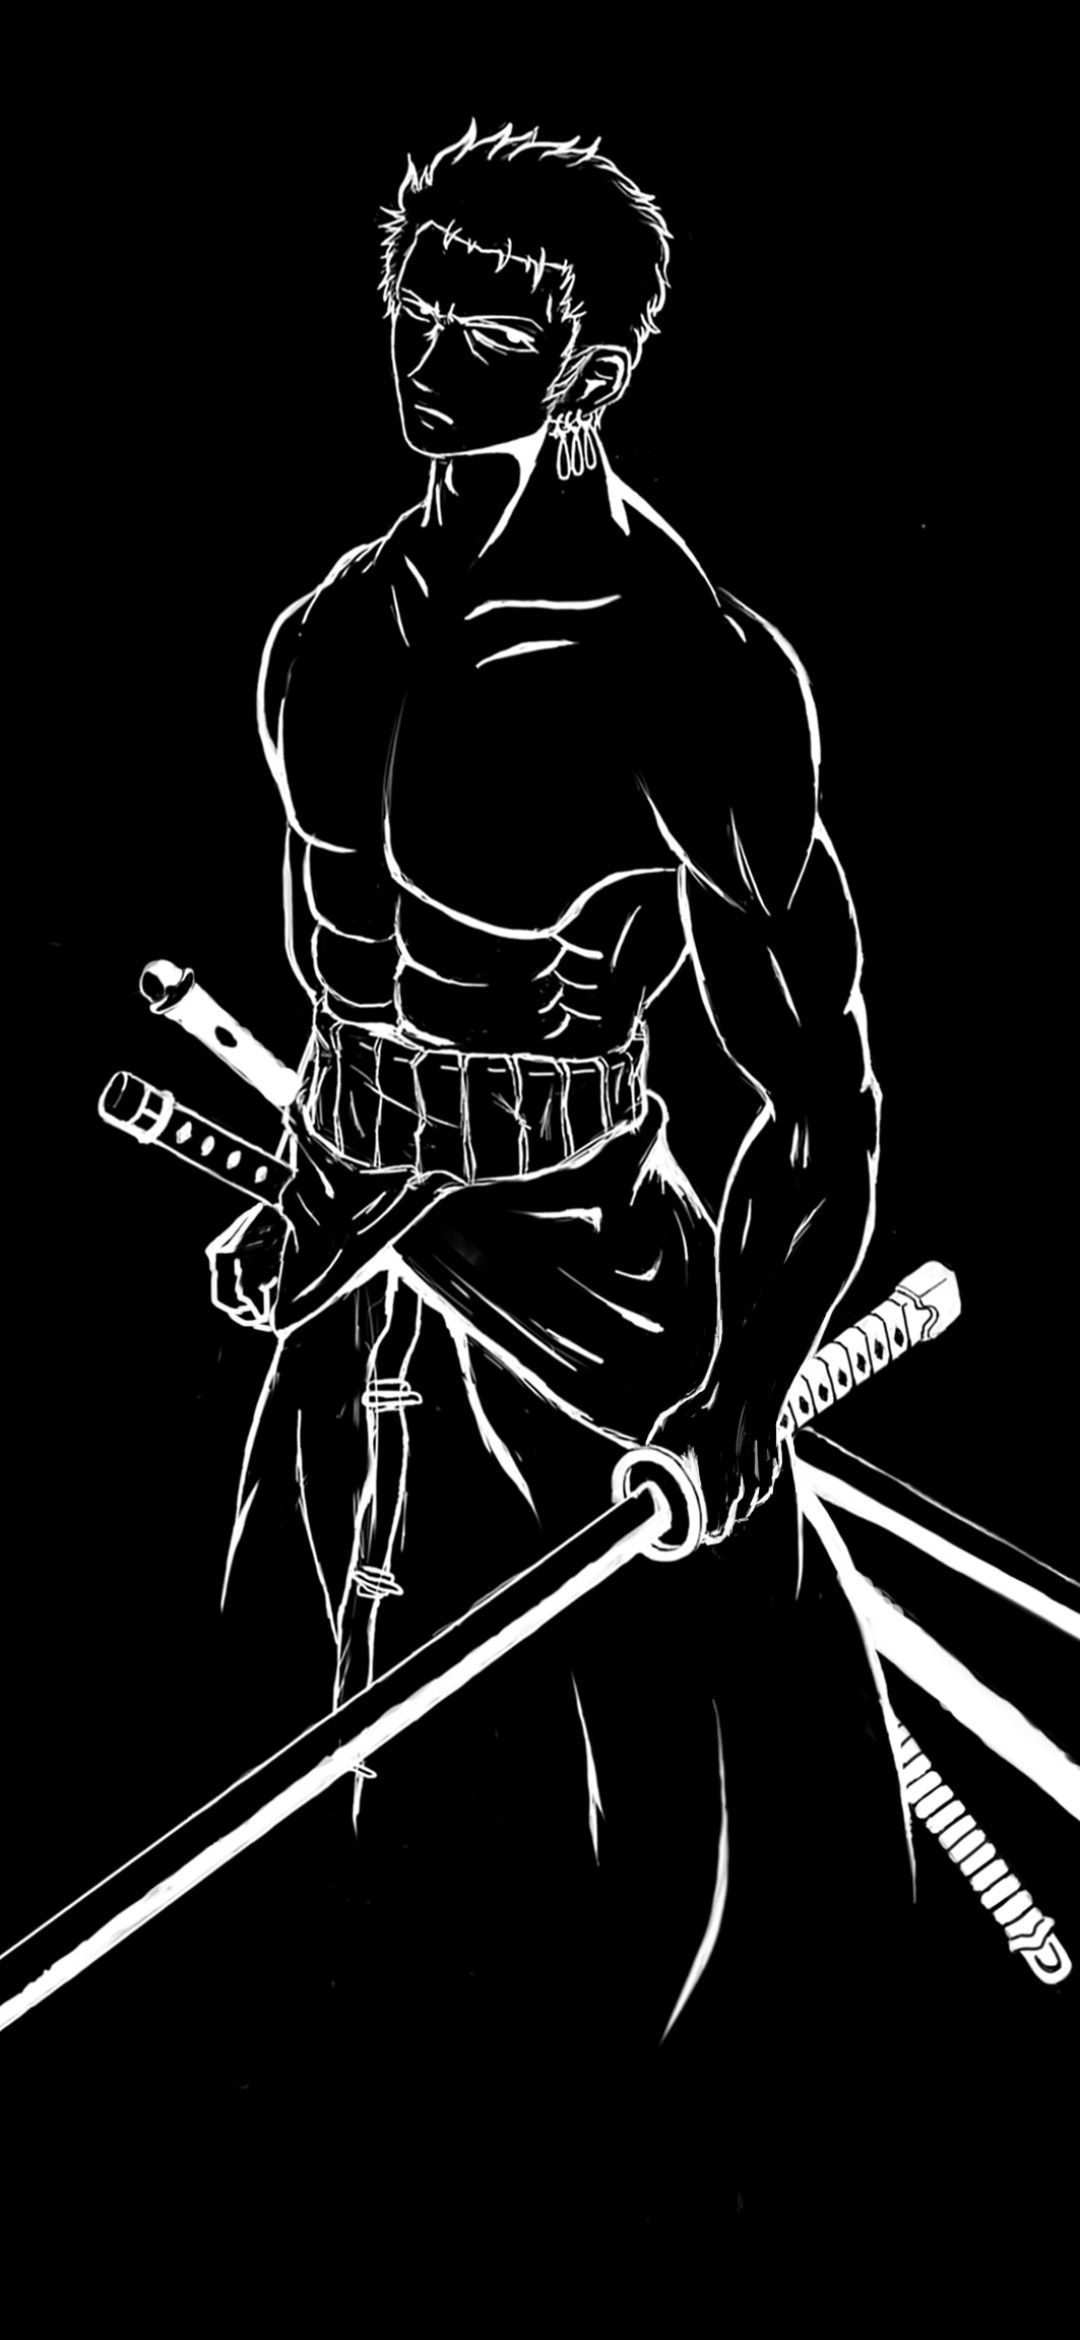 One Piece Zoro Phone Wallpapers Top Free One Piece Zoro Phone Backgrounds Wallpaperaccess